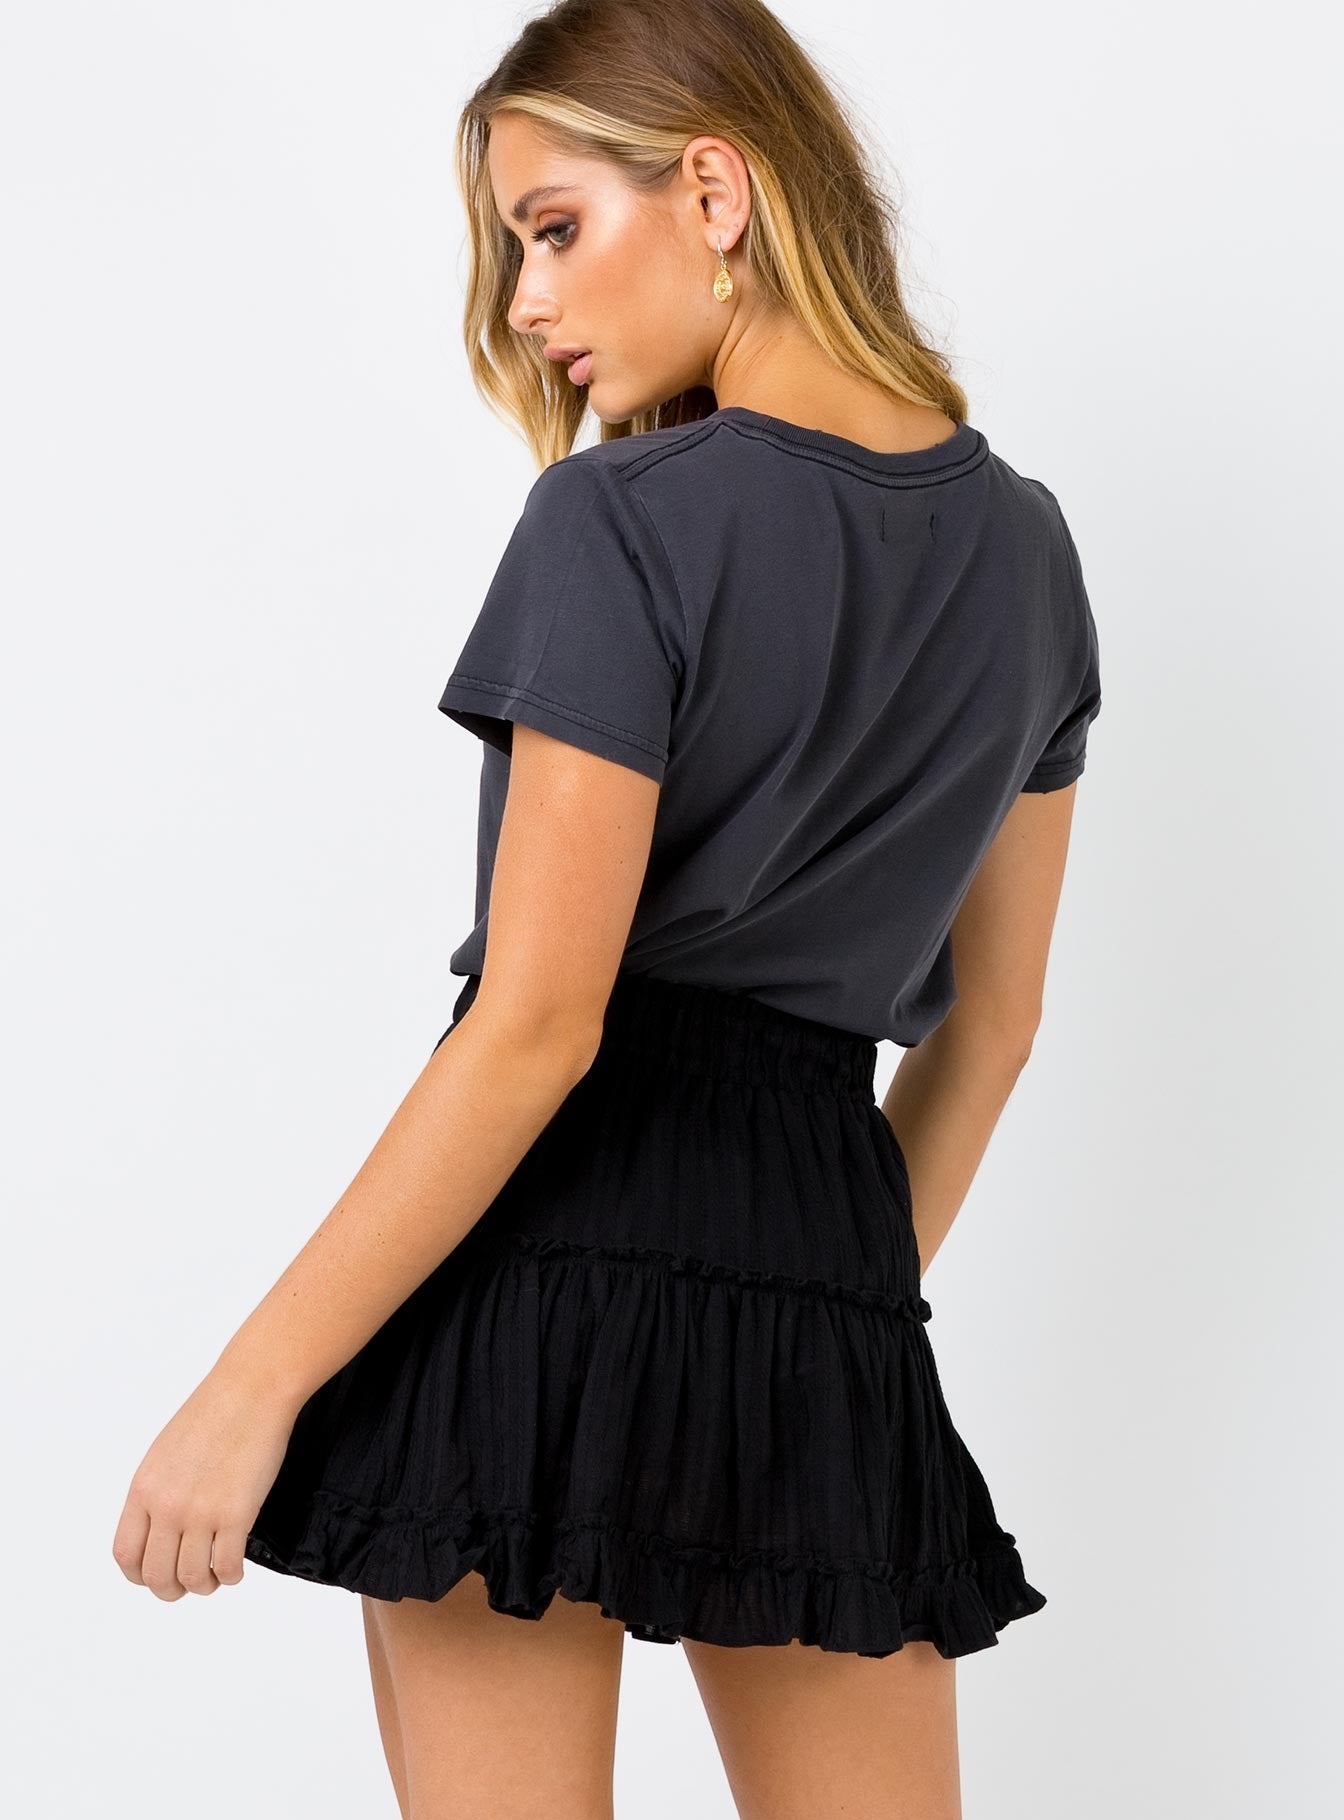 Madalaine Black Mini Skirt